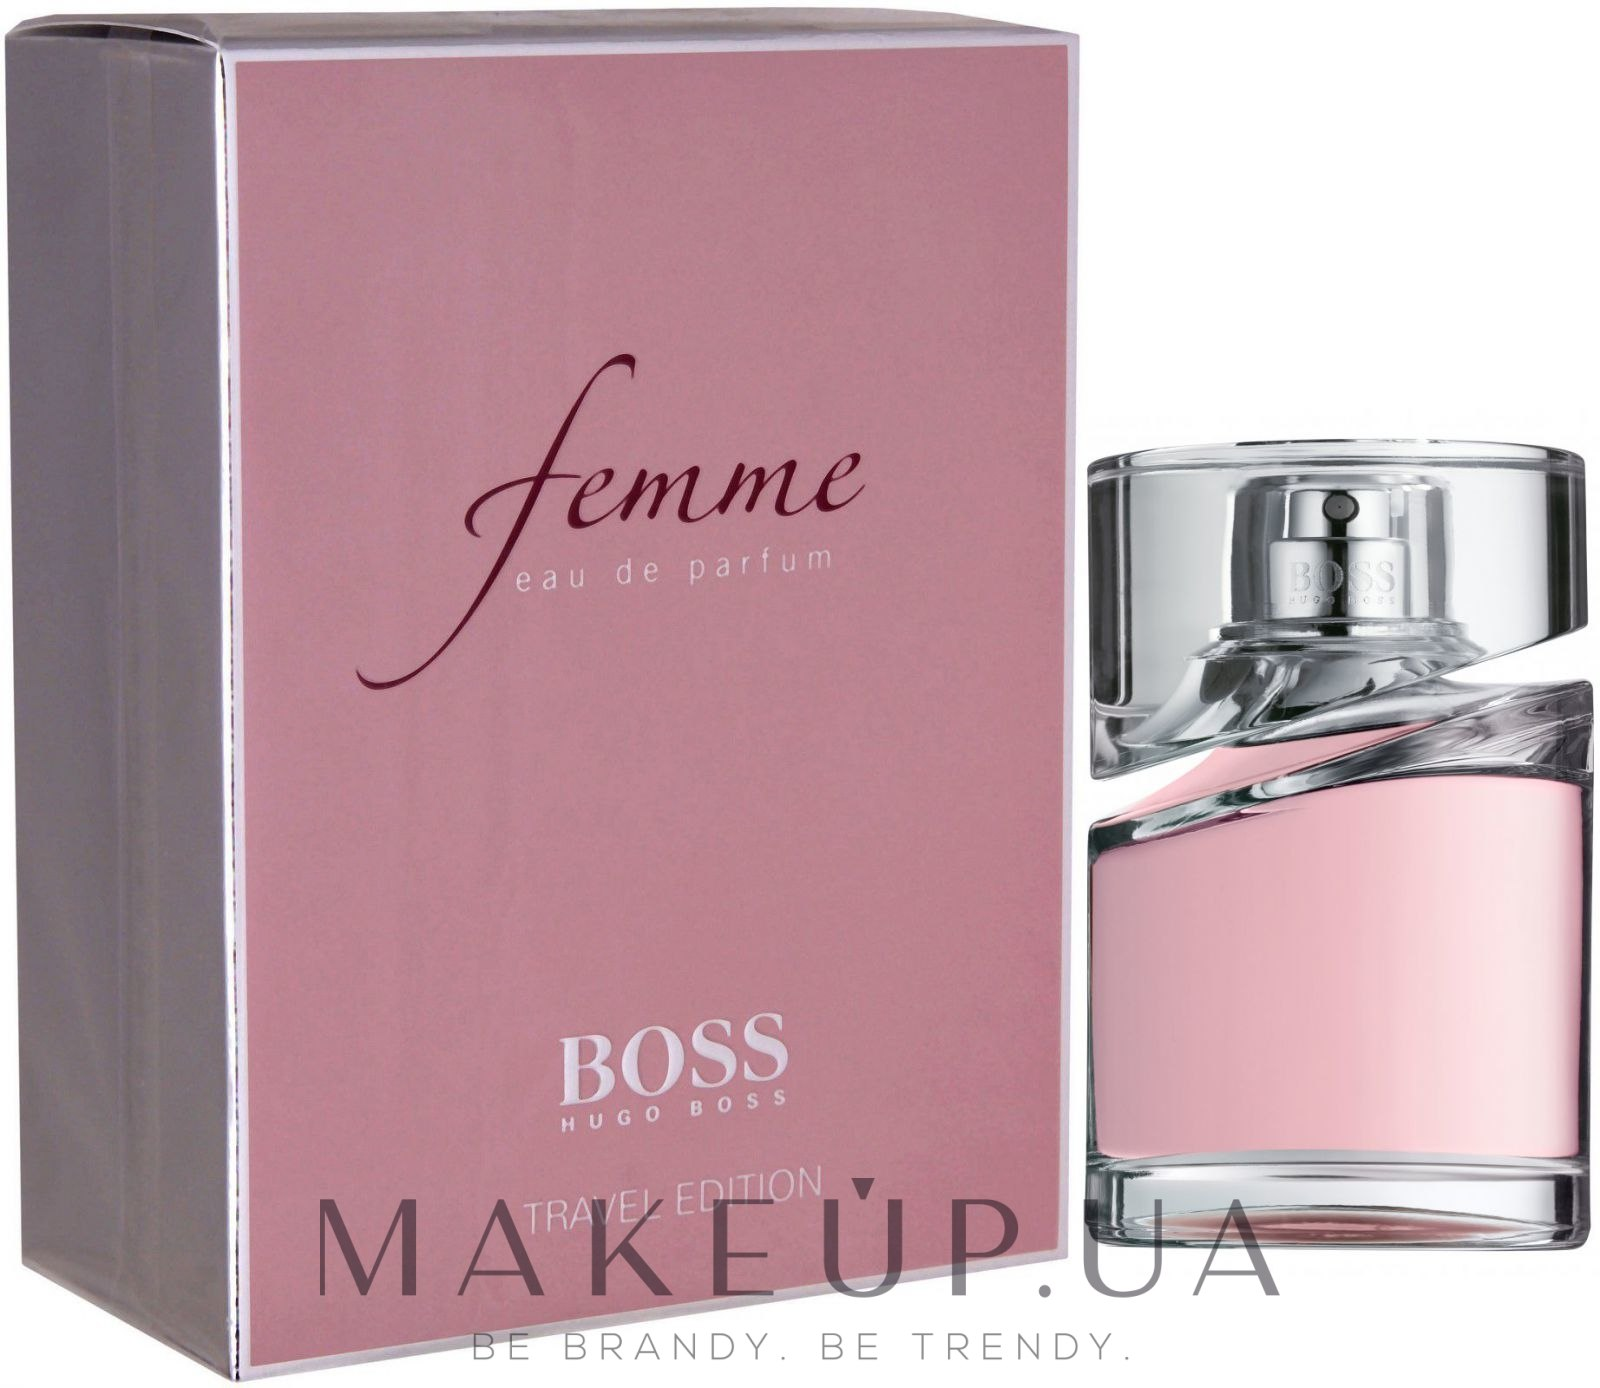 makeup hugo boss femme edp 50ml b l 100ml. Black Bedroom Furniture Sets. Home Design Ideas